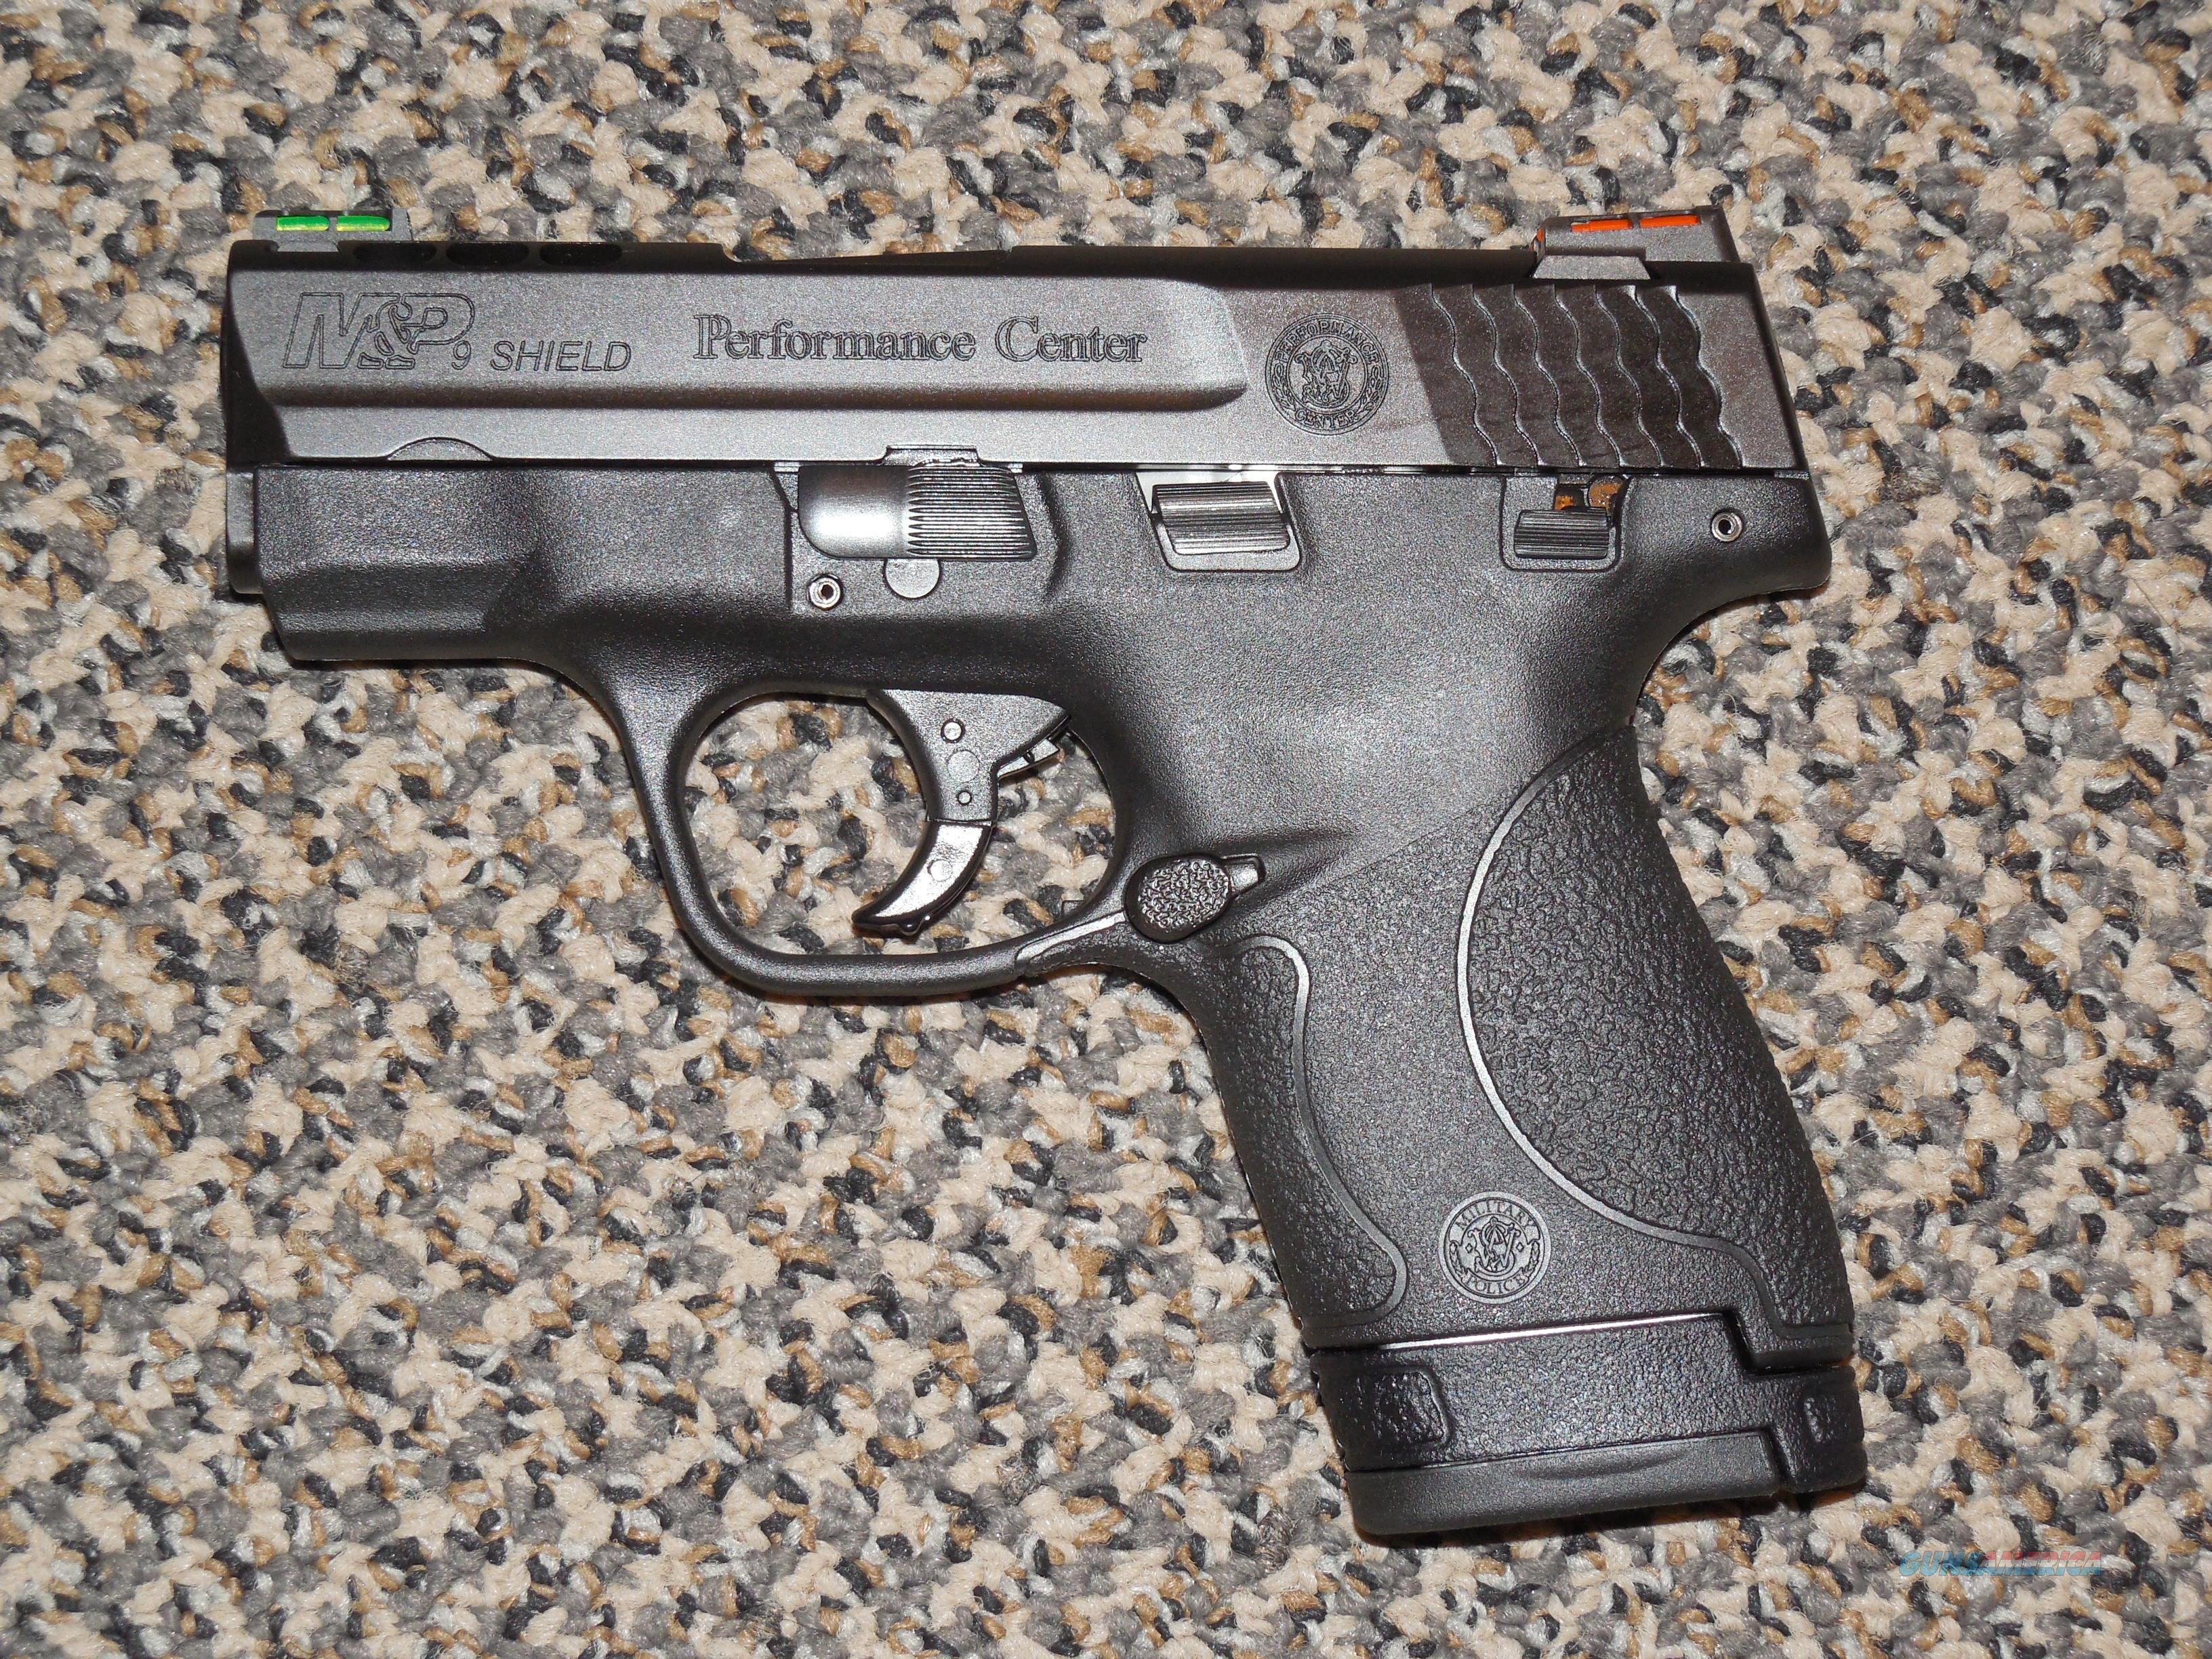 s w m p shield 9mm performance center ported pistol